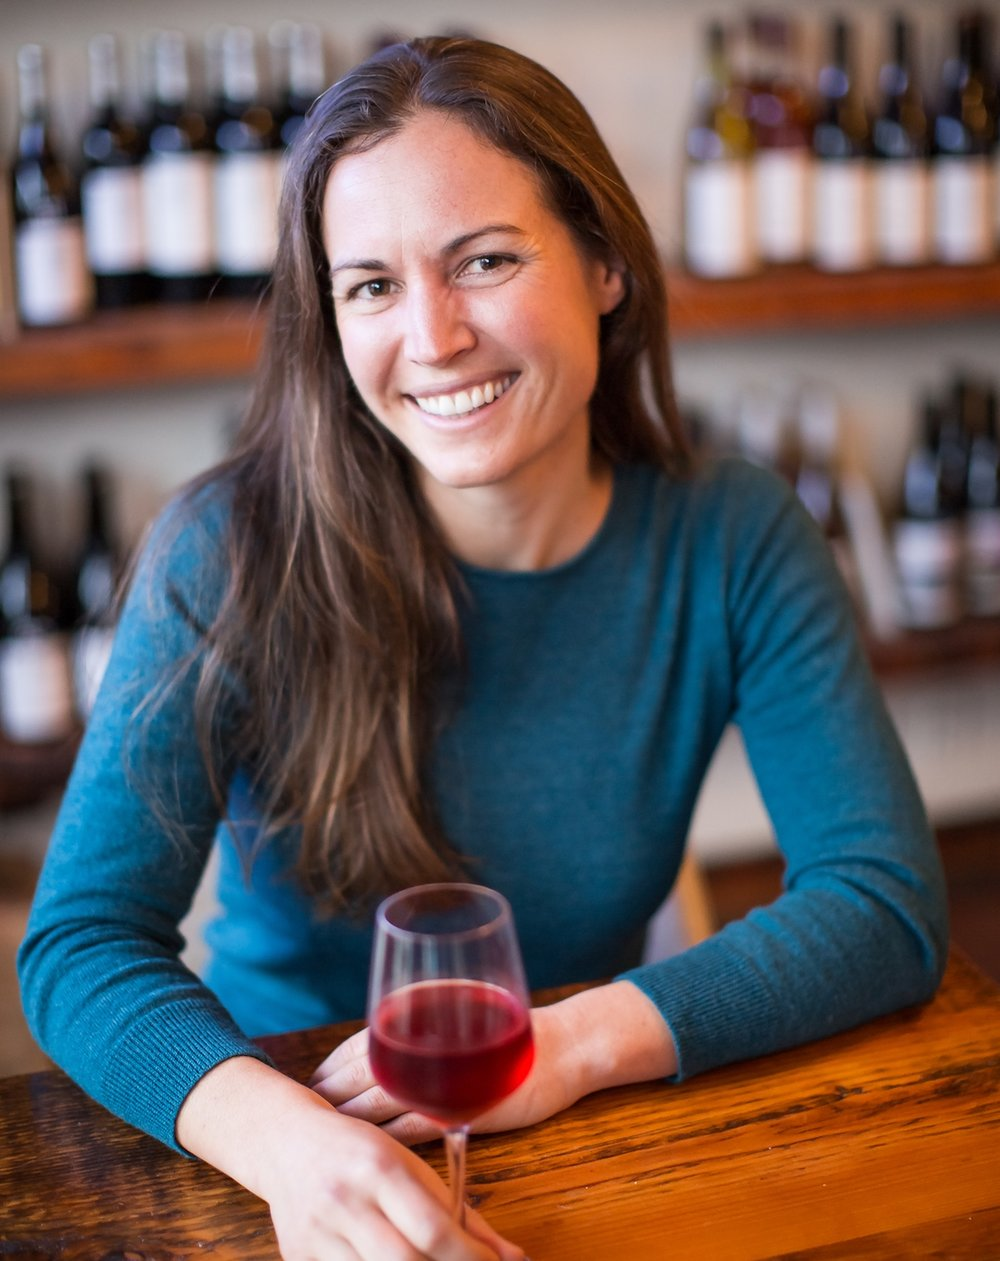 A smile and a passion. Martha's warm heart comes through in her wine, and it serves to lift your soul.